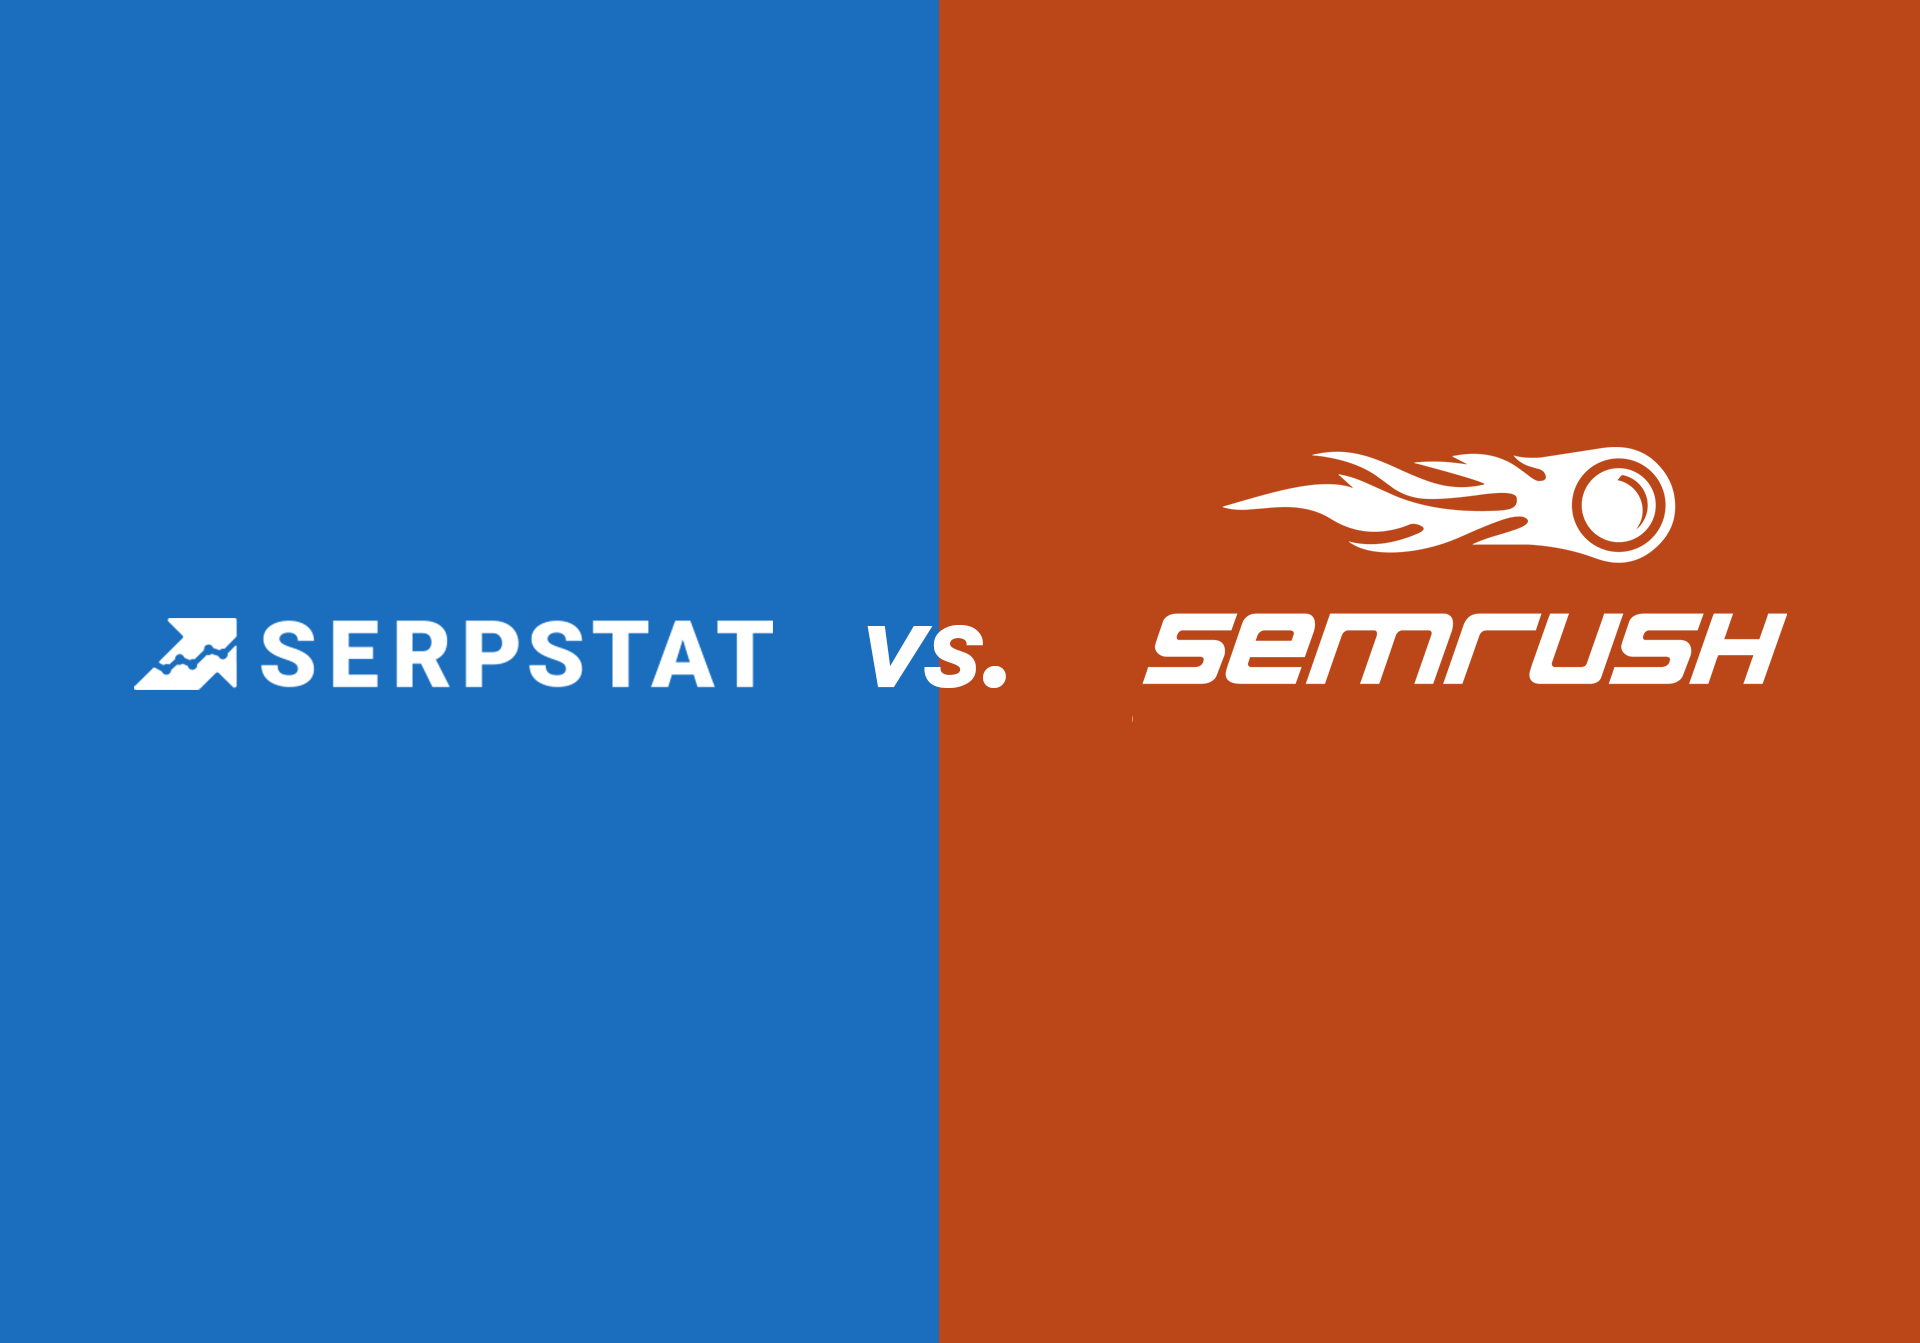 Usability Seo Software Semrush